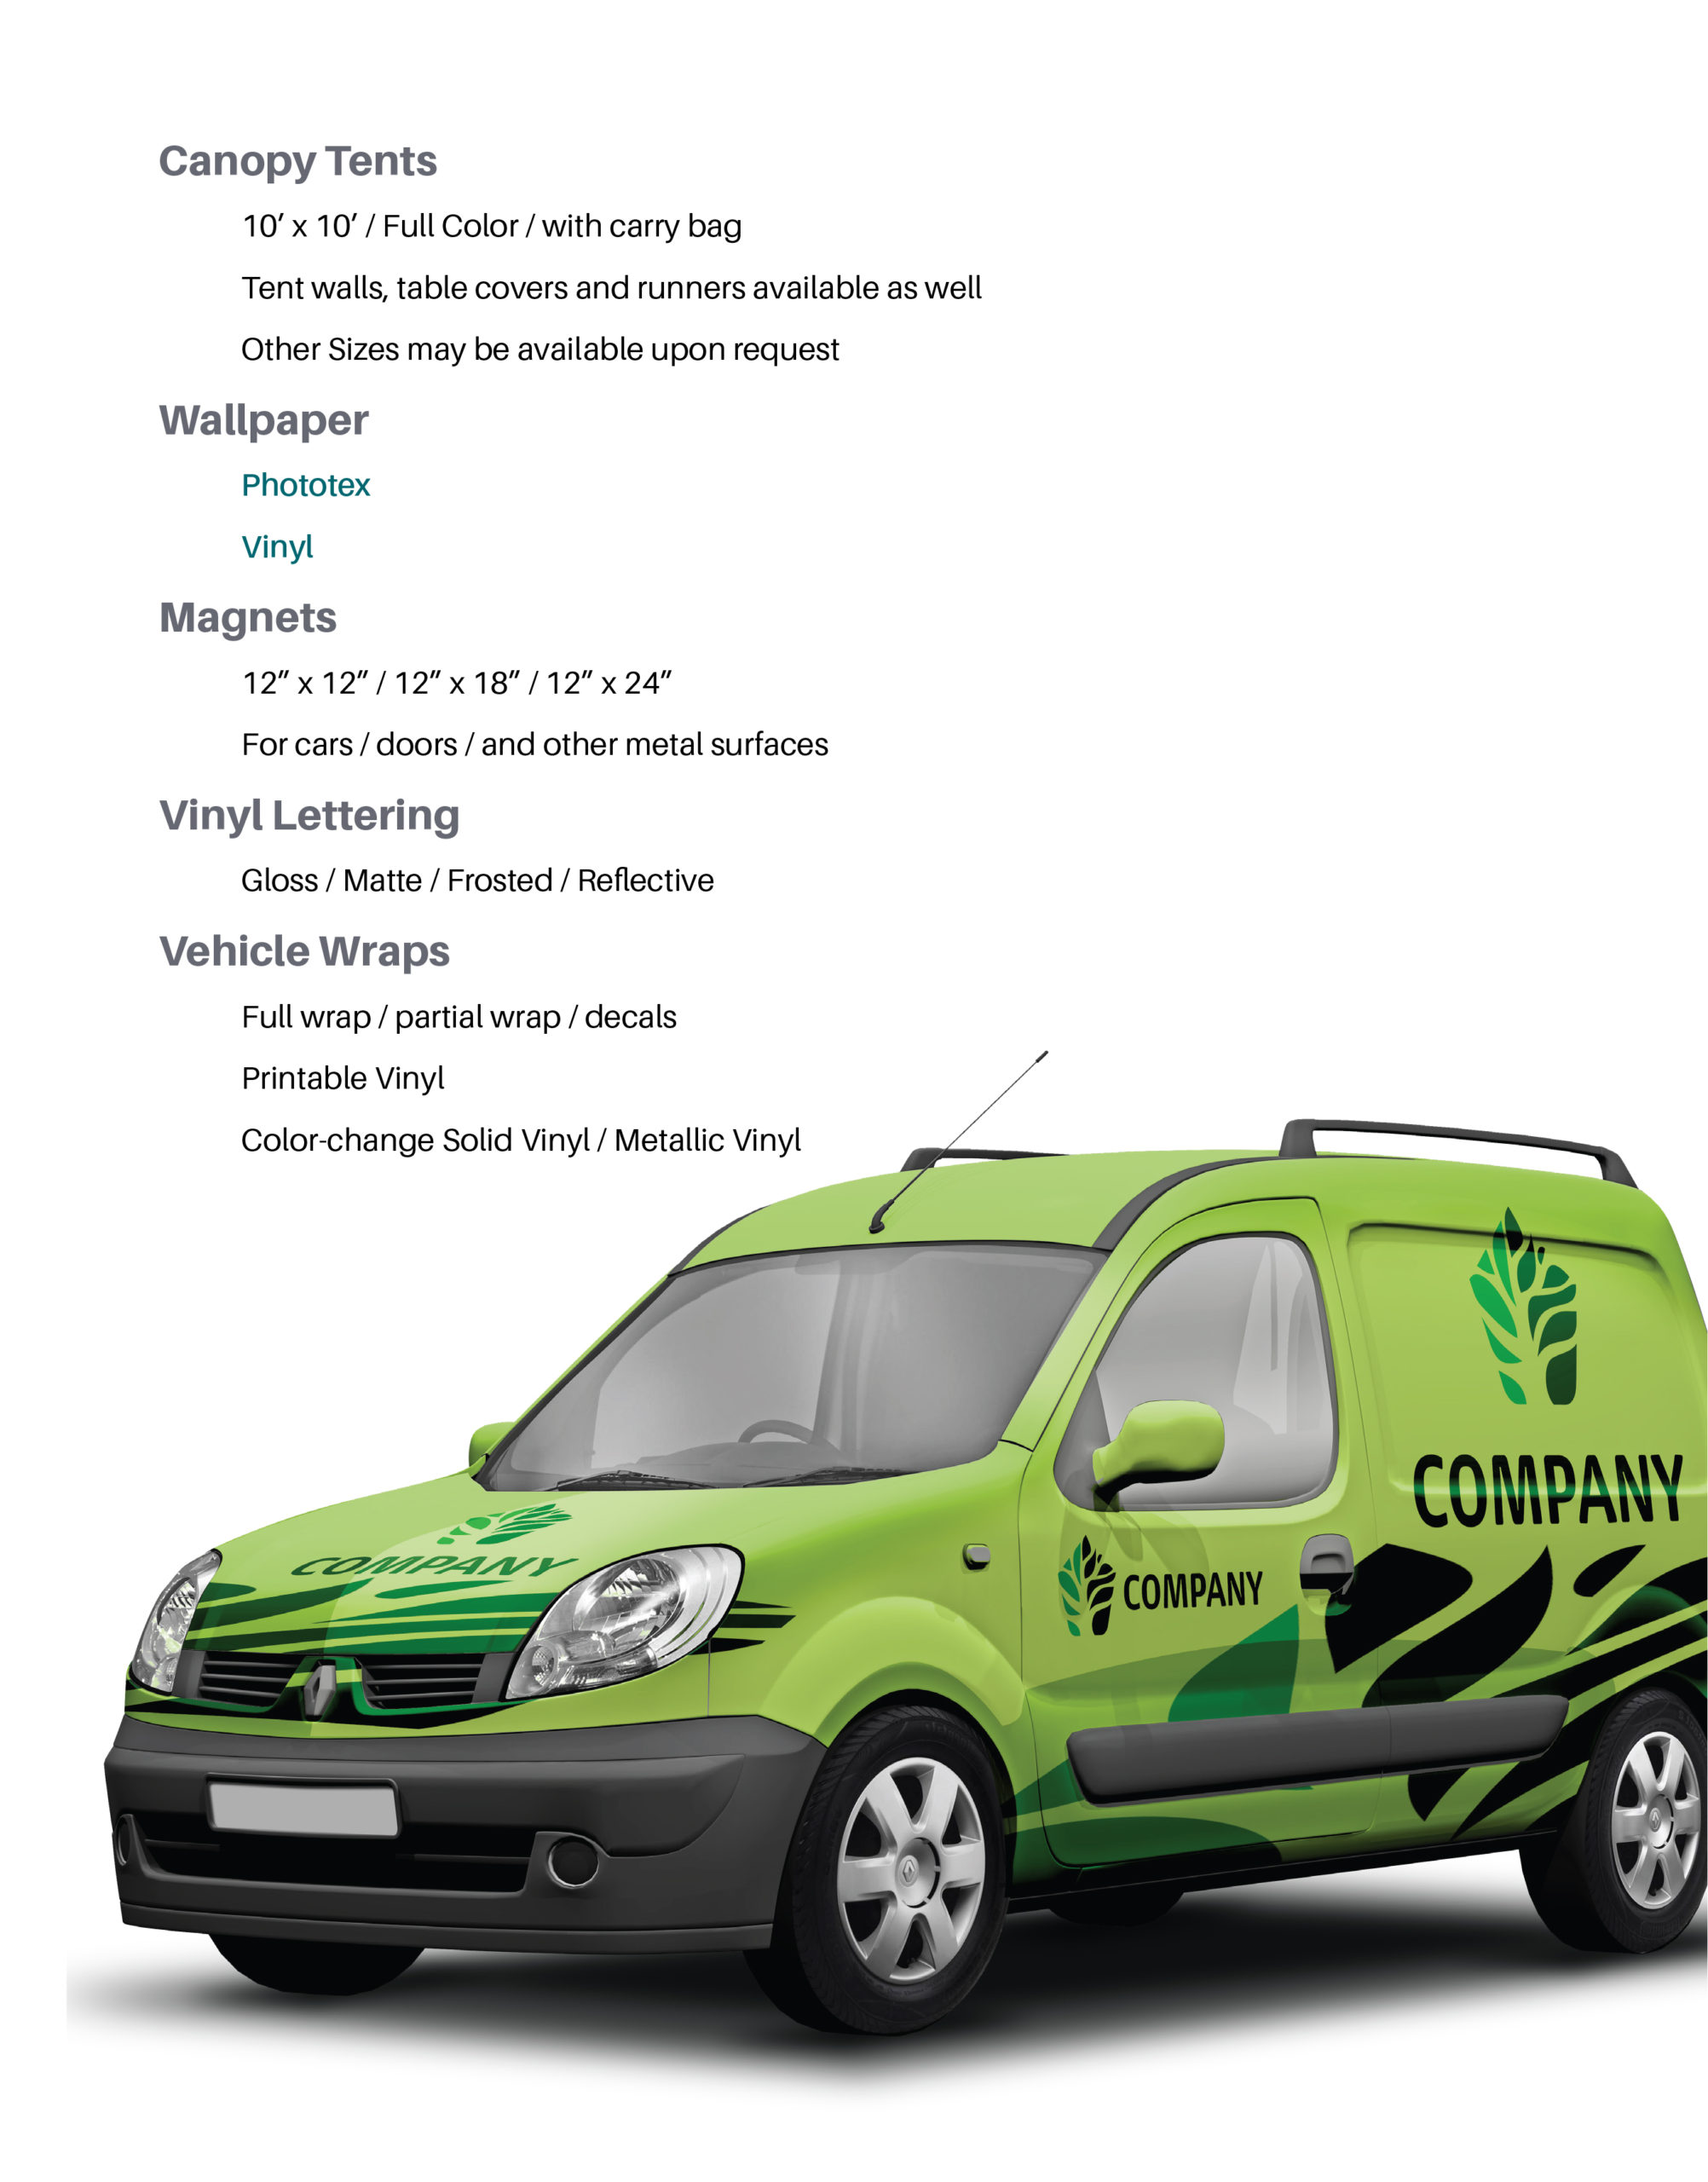 Page featuring products: Canopy Tents, Wallpaper, Magnets, Vinyl Lettering, and Vehicle Wraps